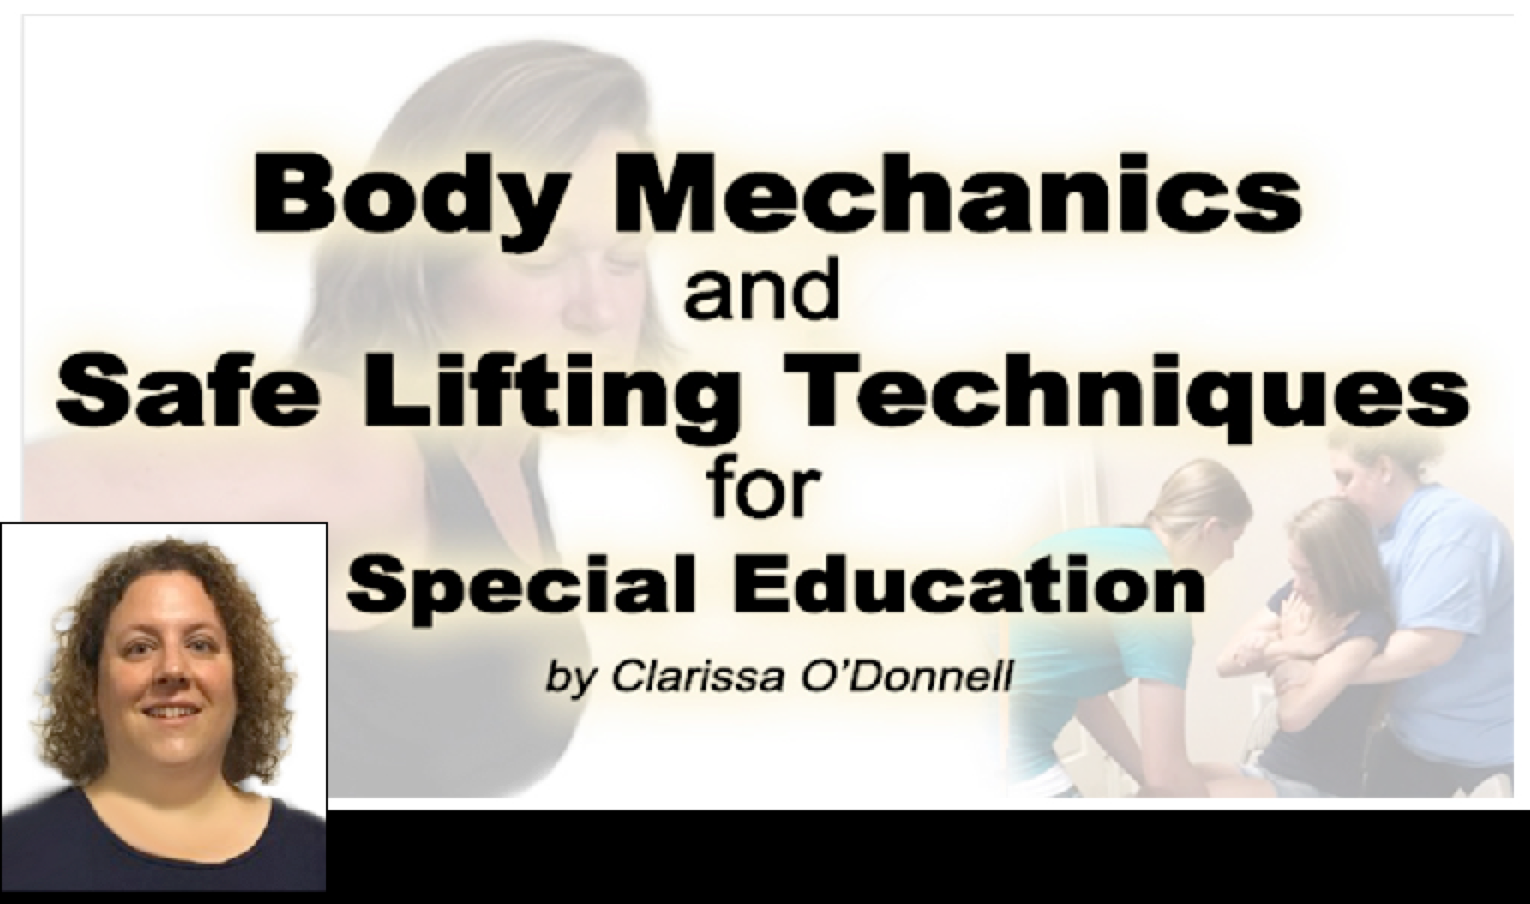 Welcome screen to the course Body Mechanics and Safe Lifting for Special Educaiton